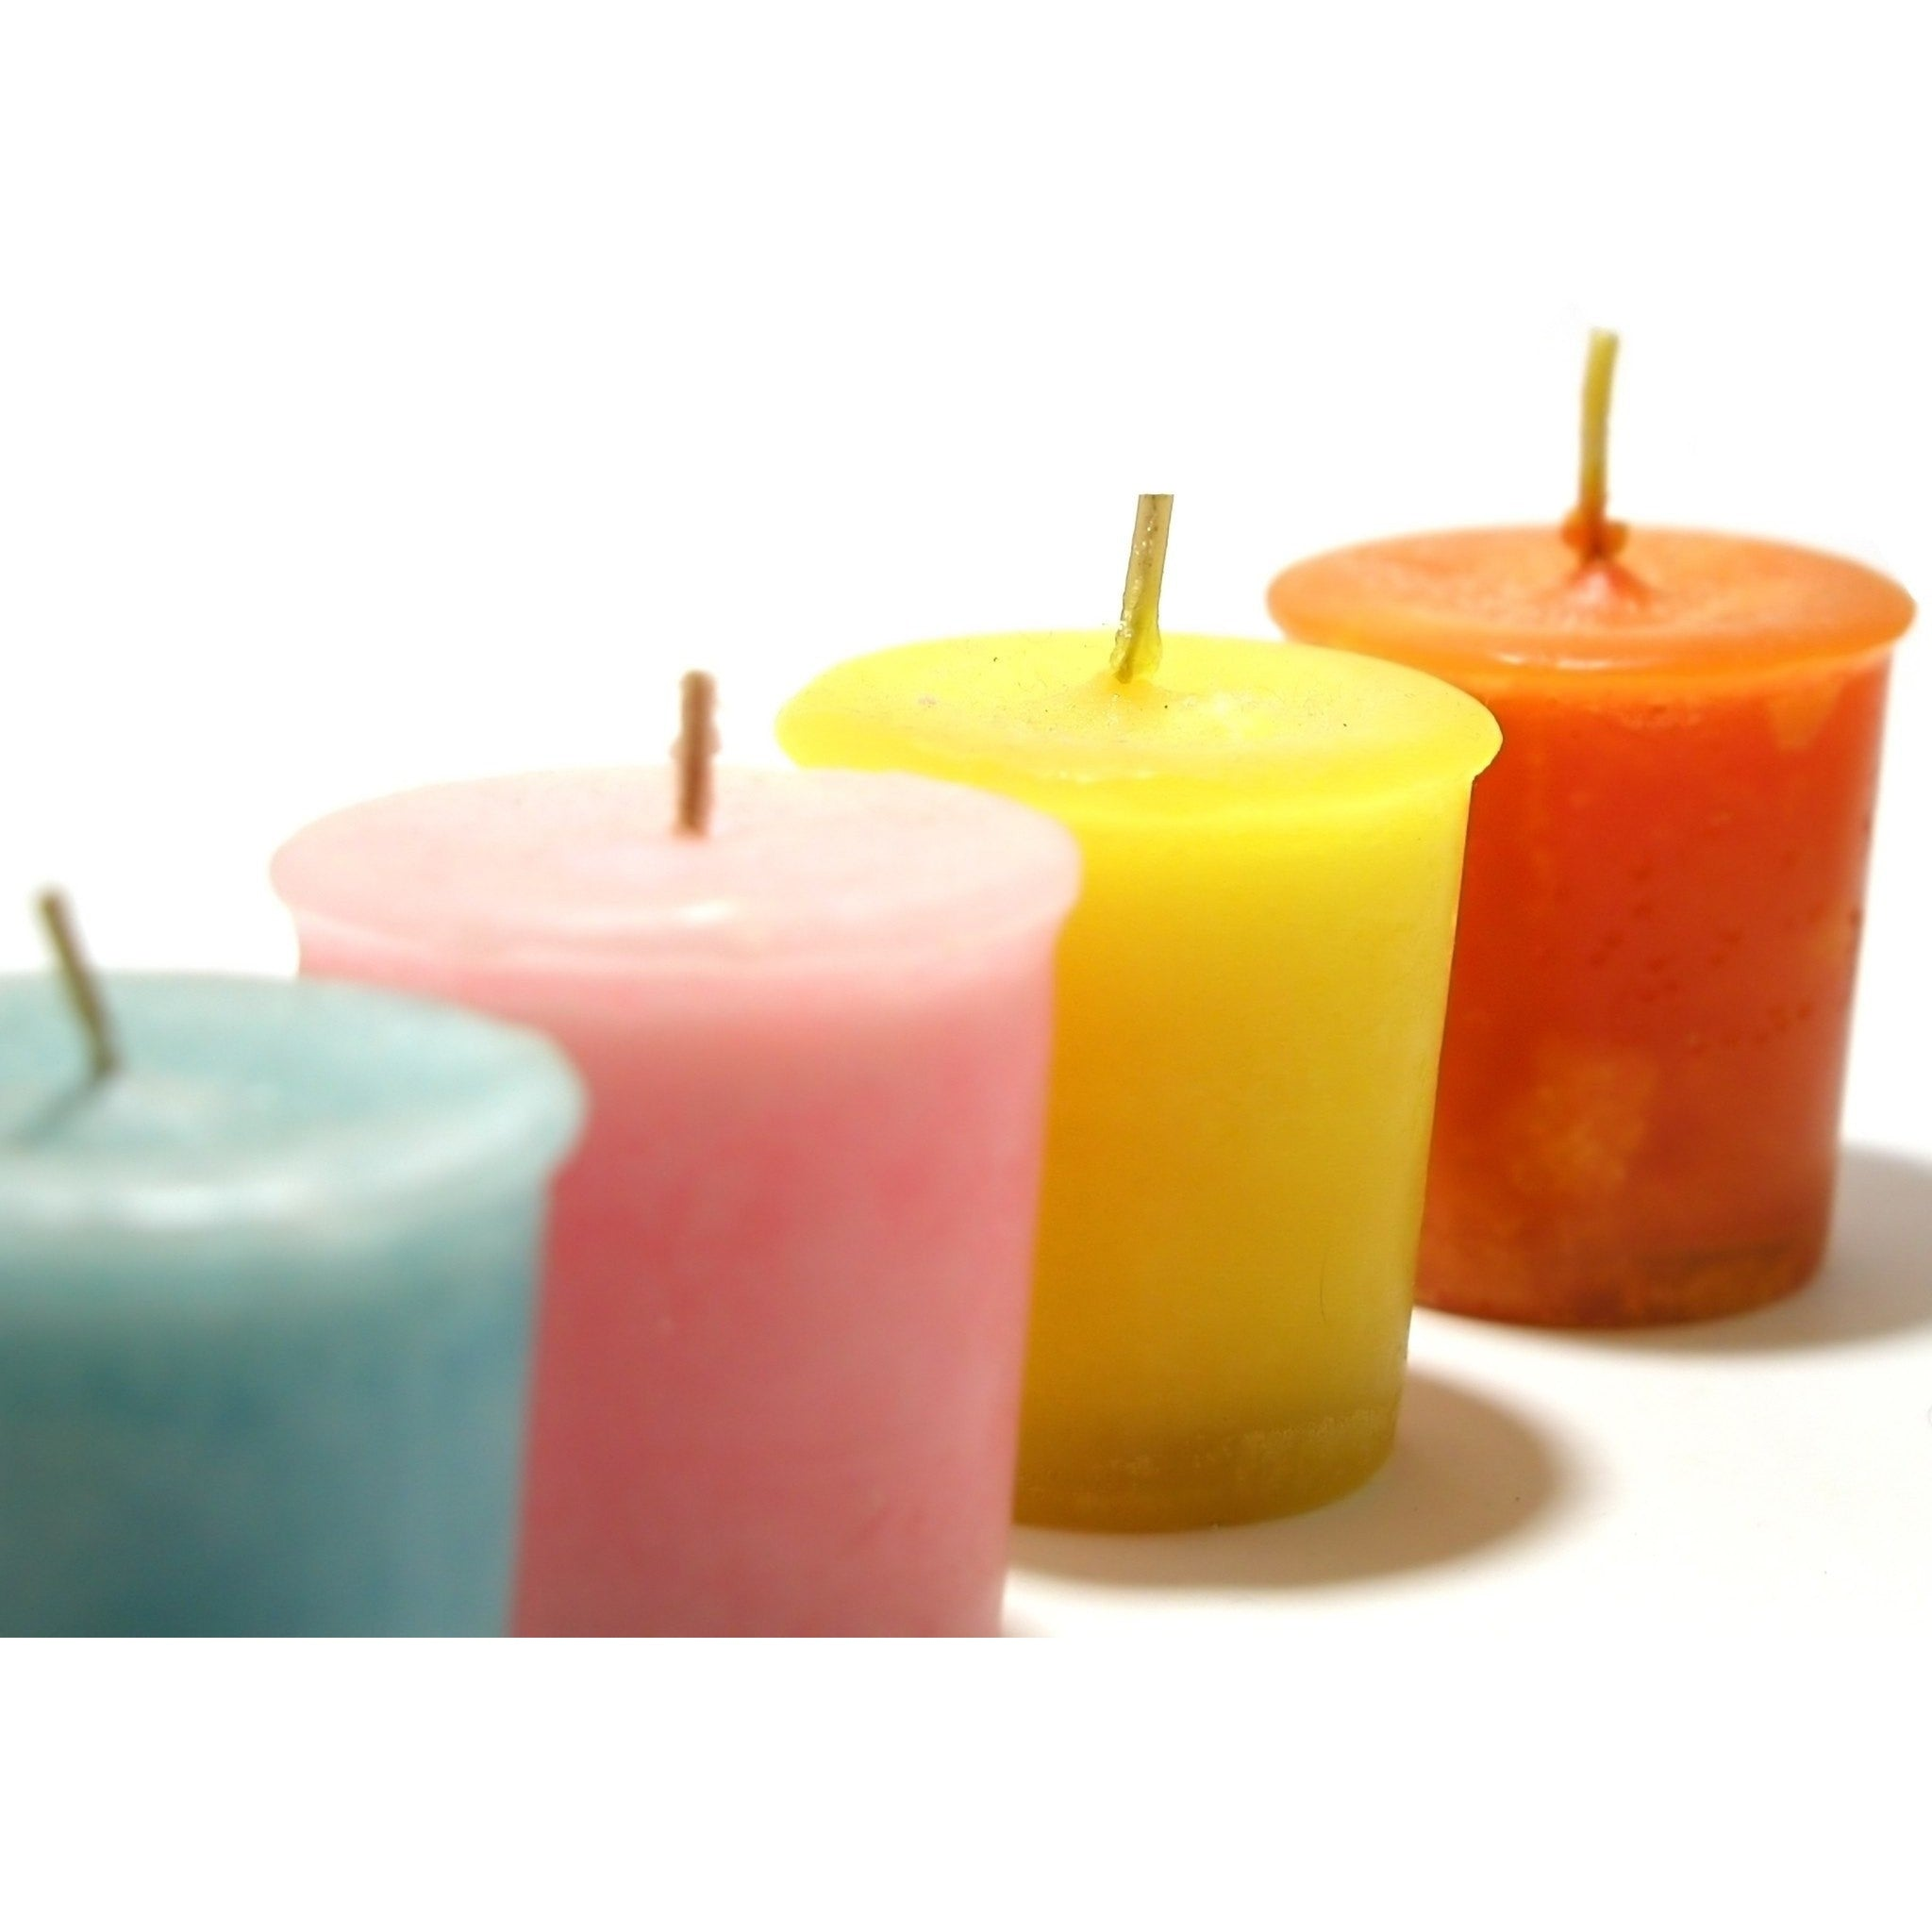 Exotic-Grapefruit Natural Hand Poured Soy Candles - Votive-Single - Bella-Mia Naturals All Natural Soy Candles & Lip Balms - 10